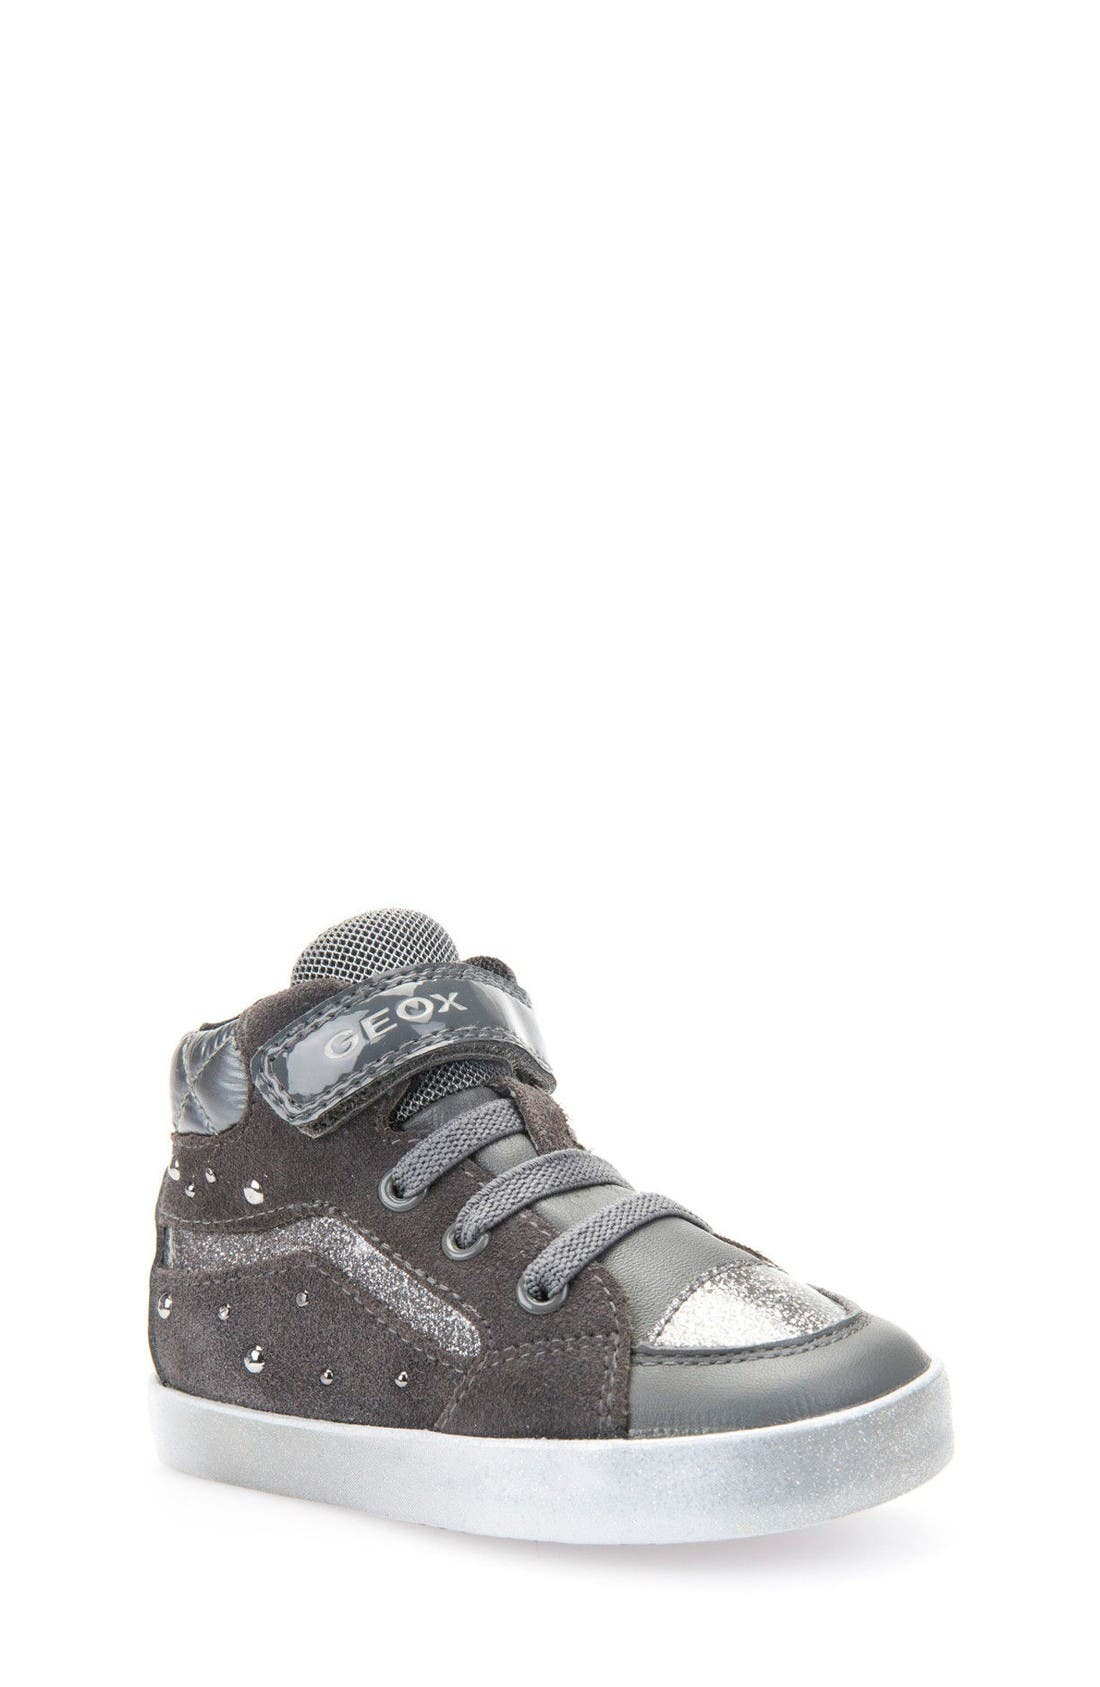 GEOX Kiwi Studded High Top Sneaker